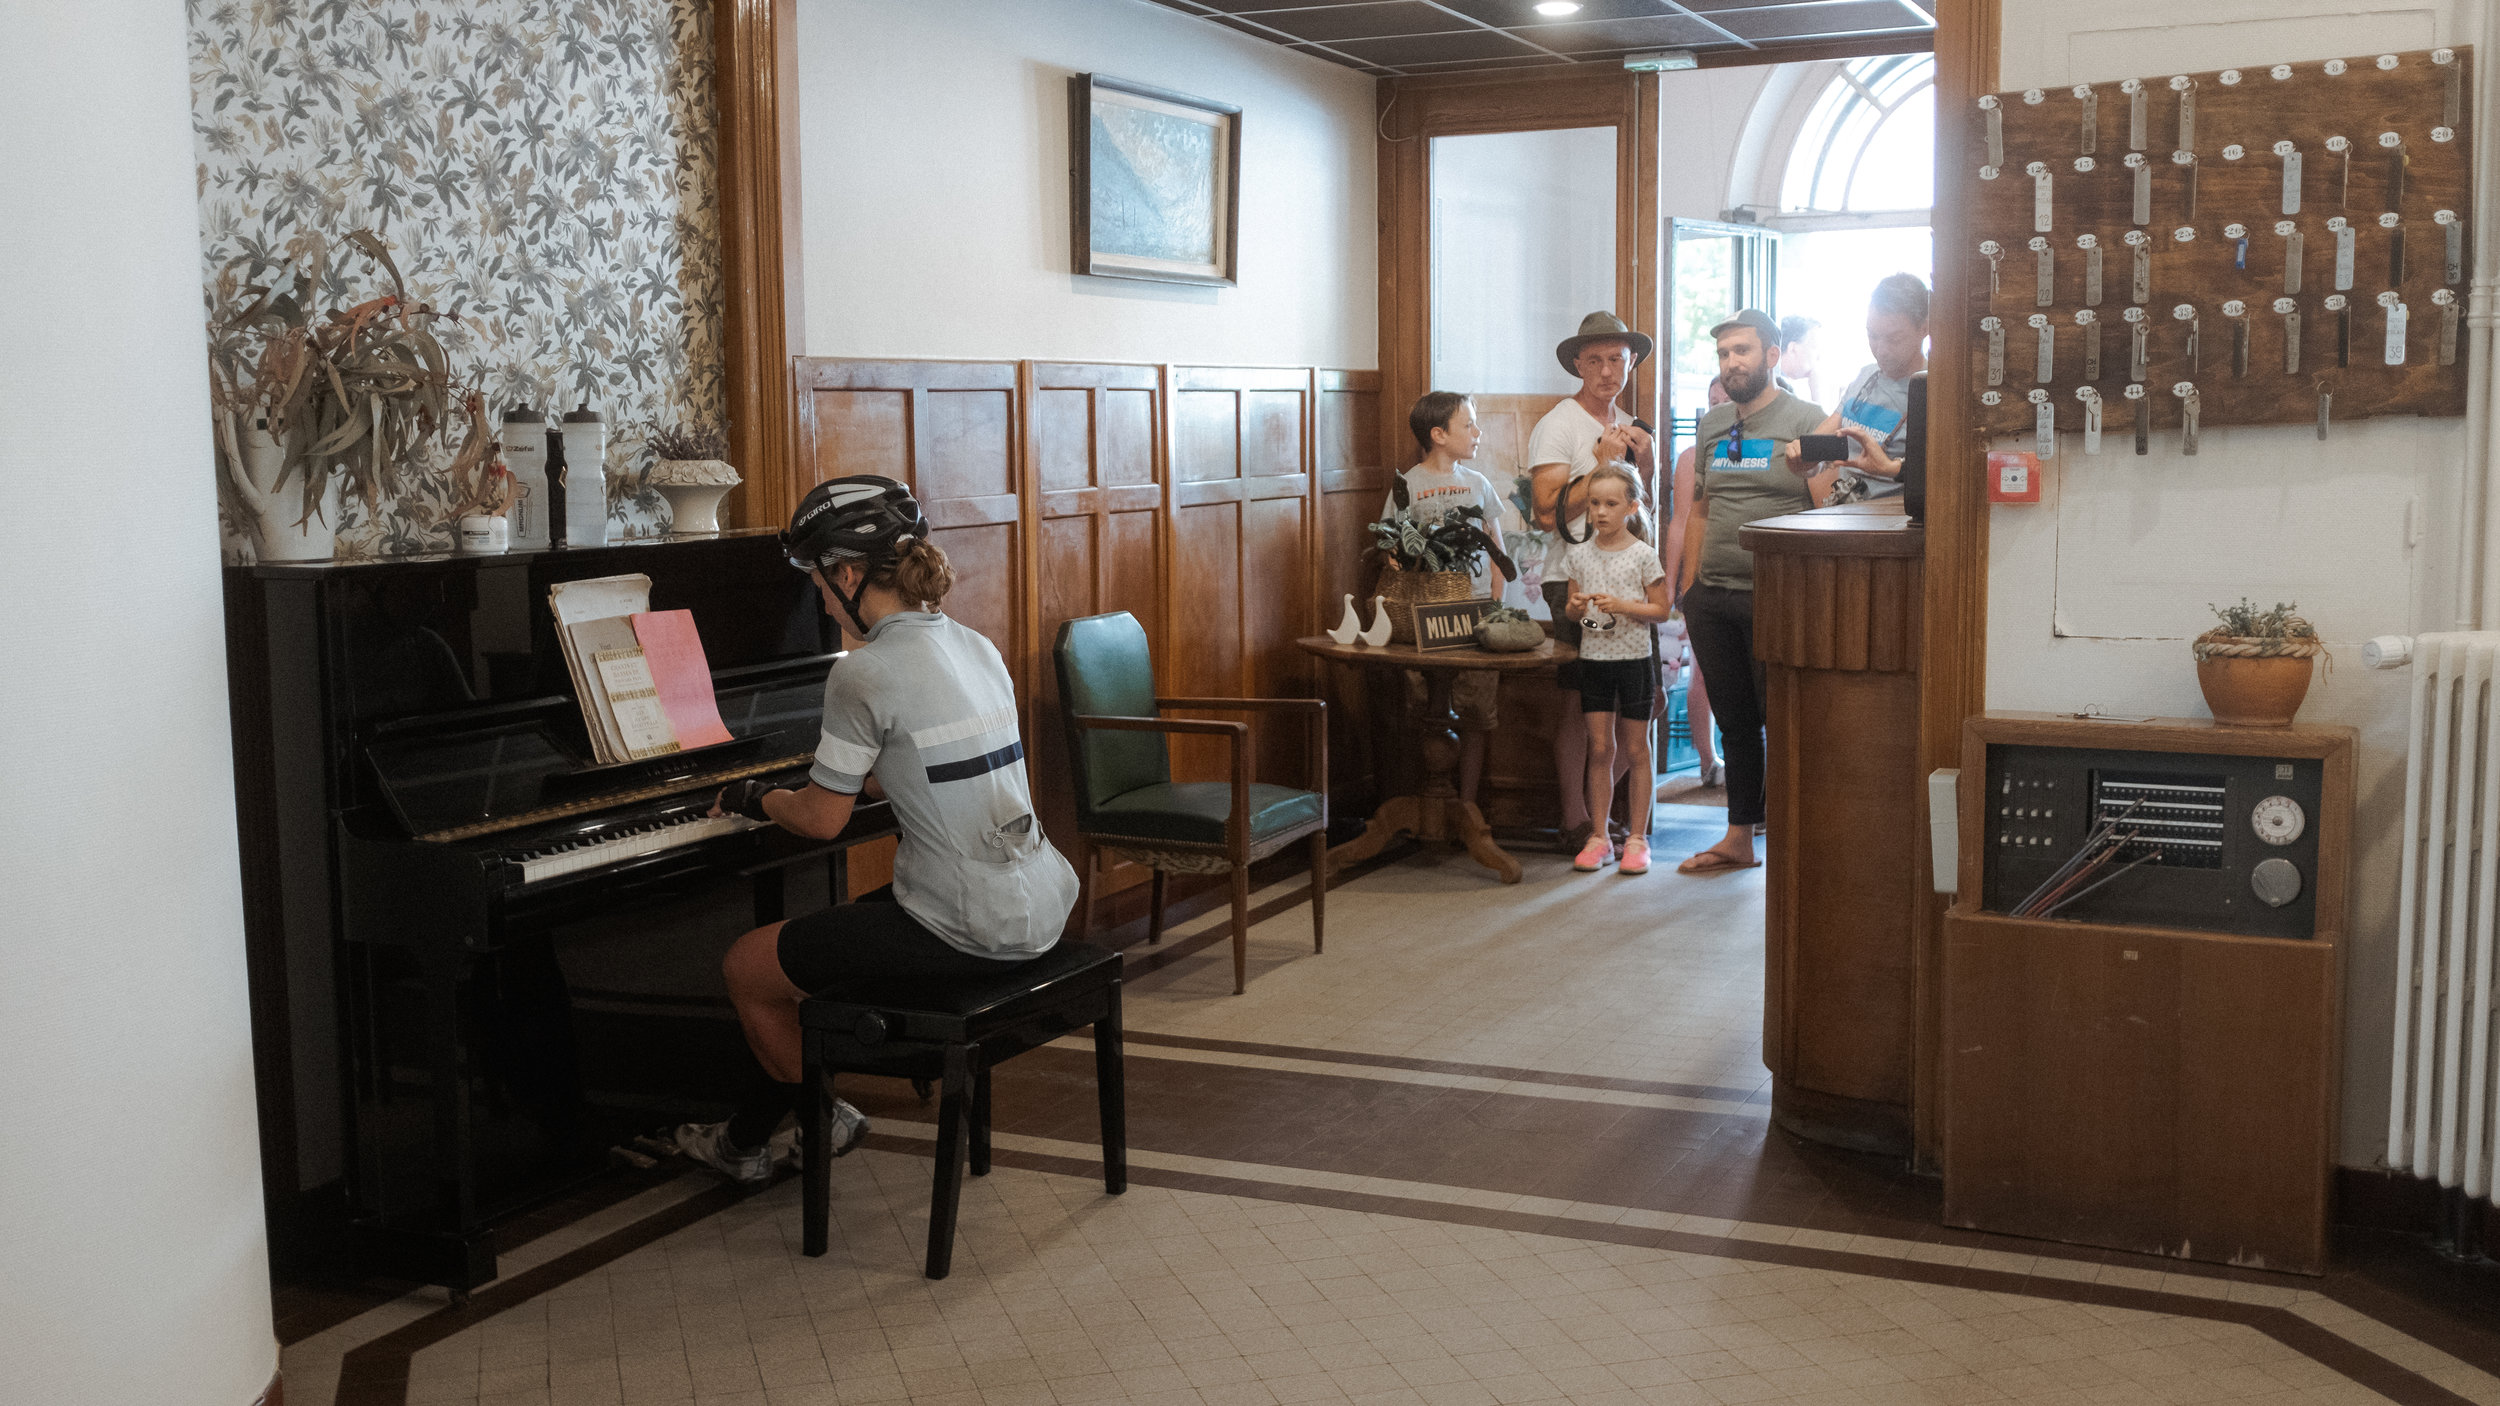 Fiona entertains a crowd at the Control Point 4 at Hotel de Milan in Bourg d'Oisans.